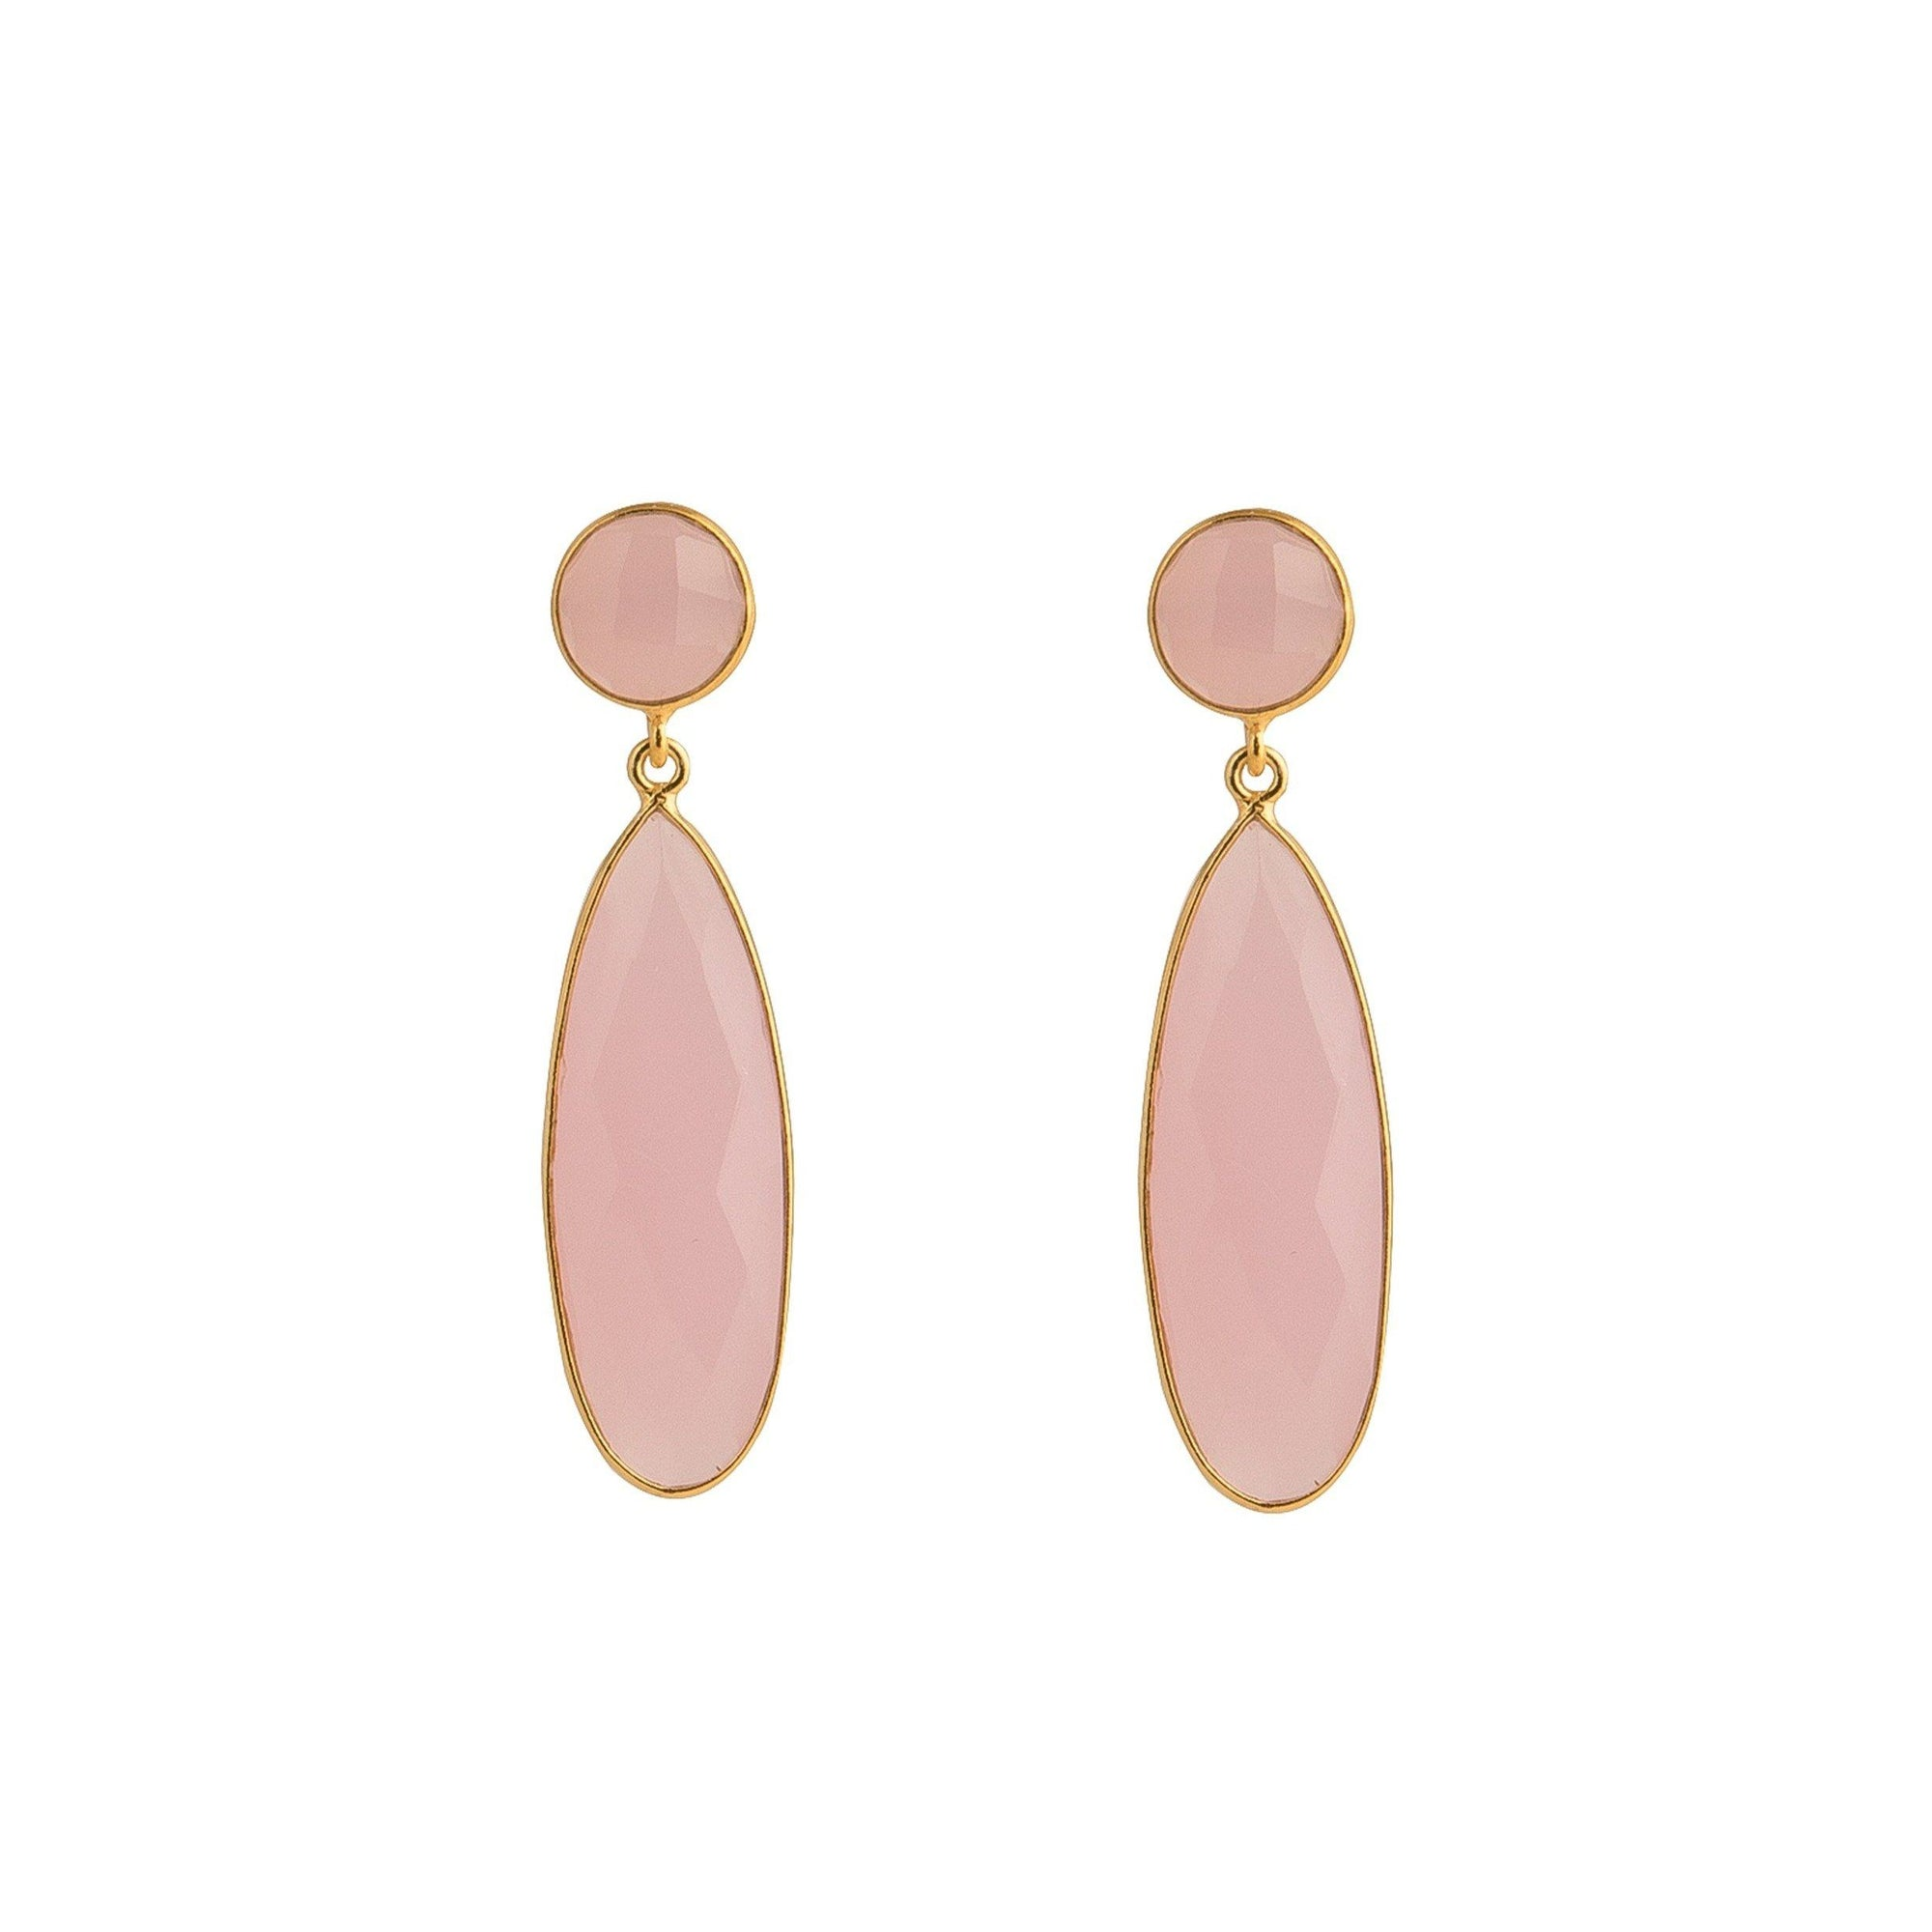 Bernadine gold-plated silver tear-drops in Rose quartz - Drops